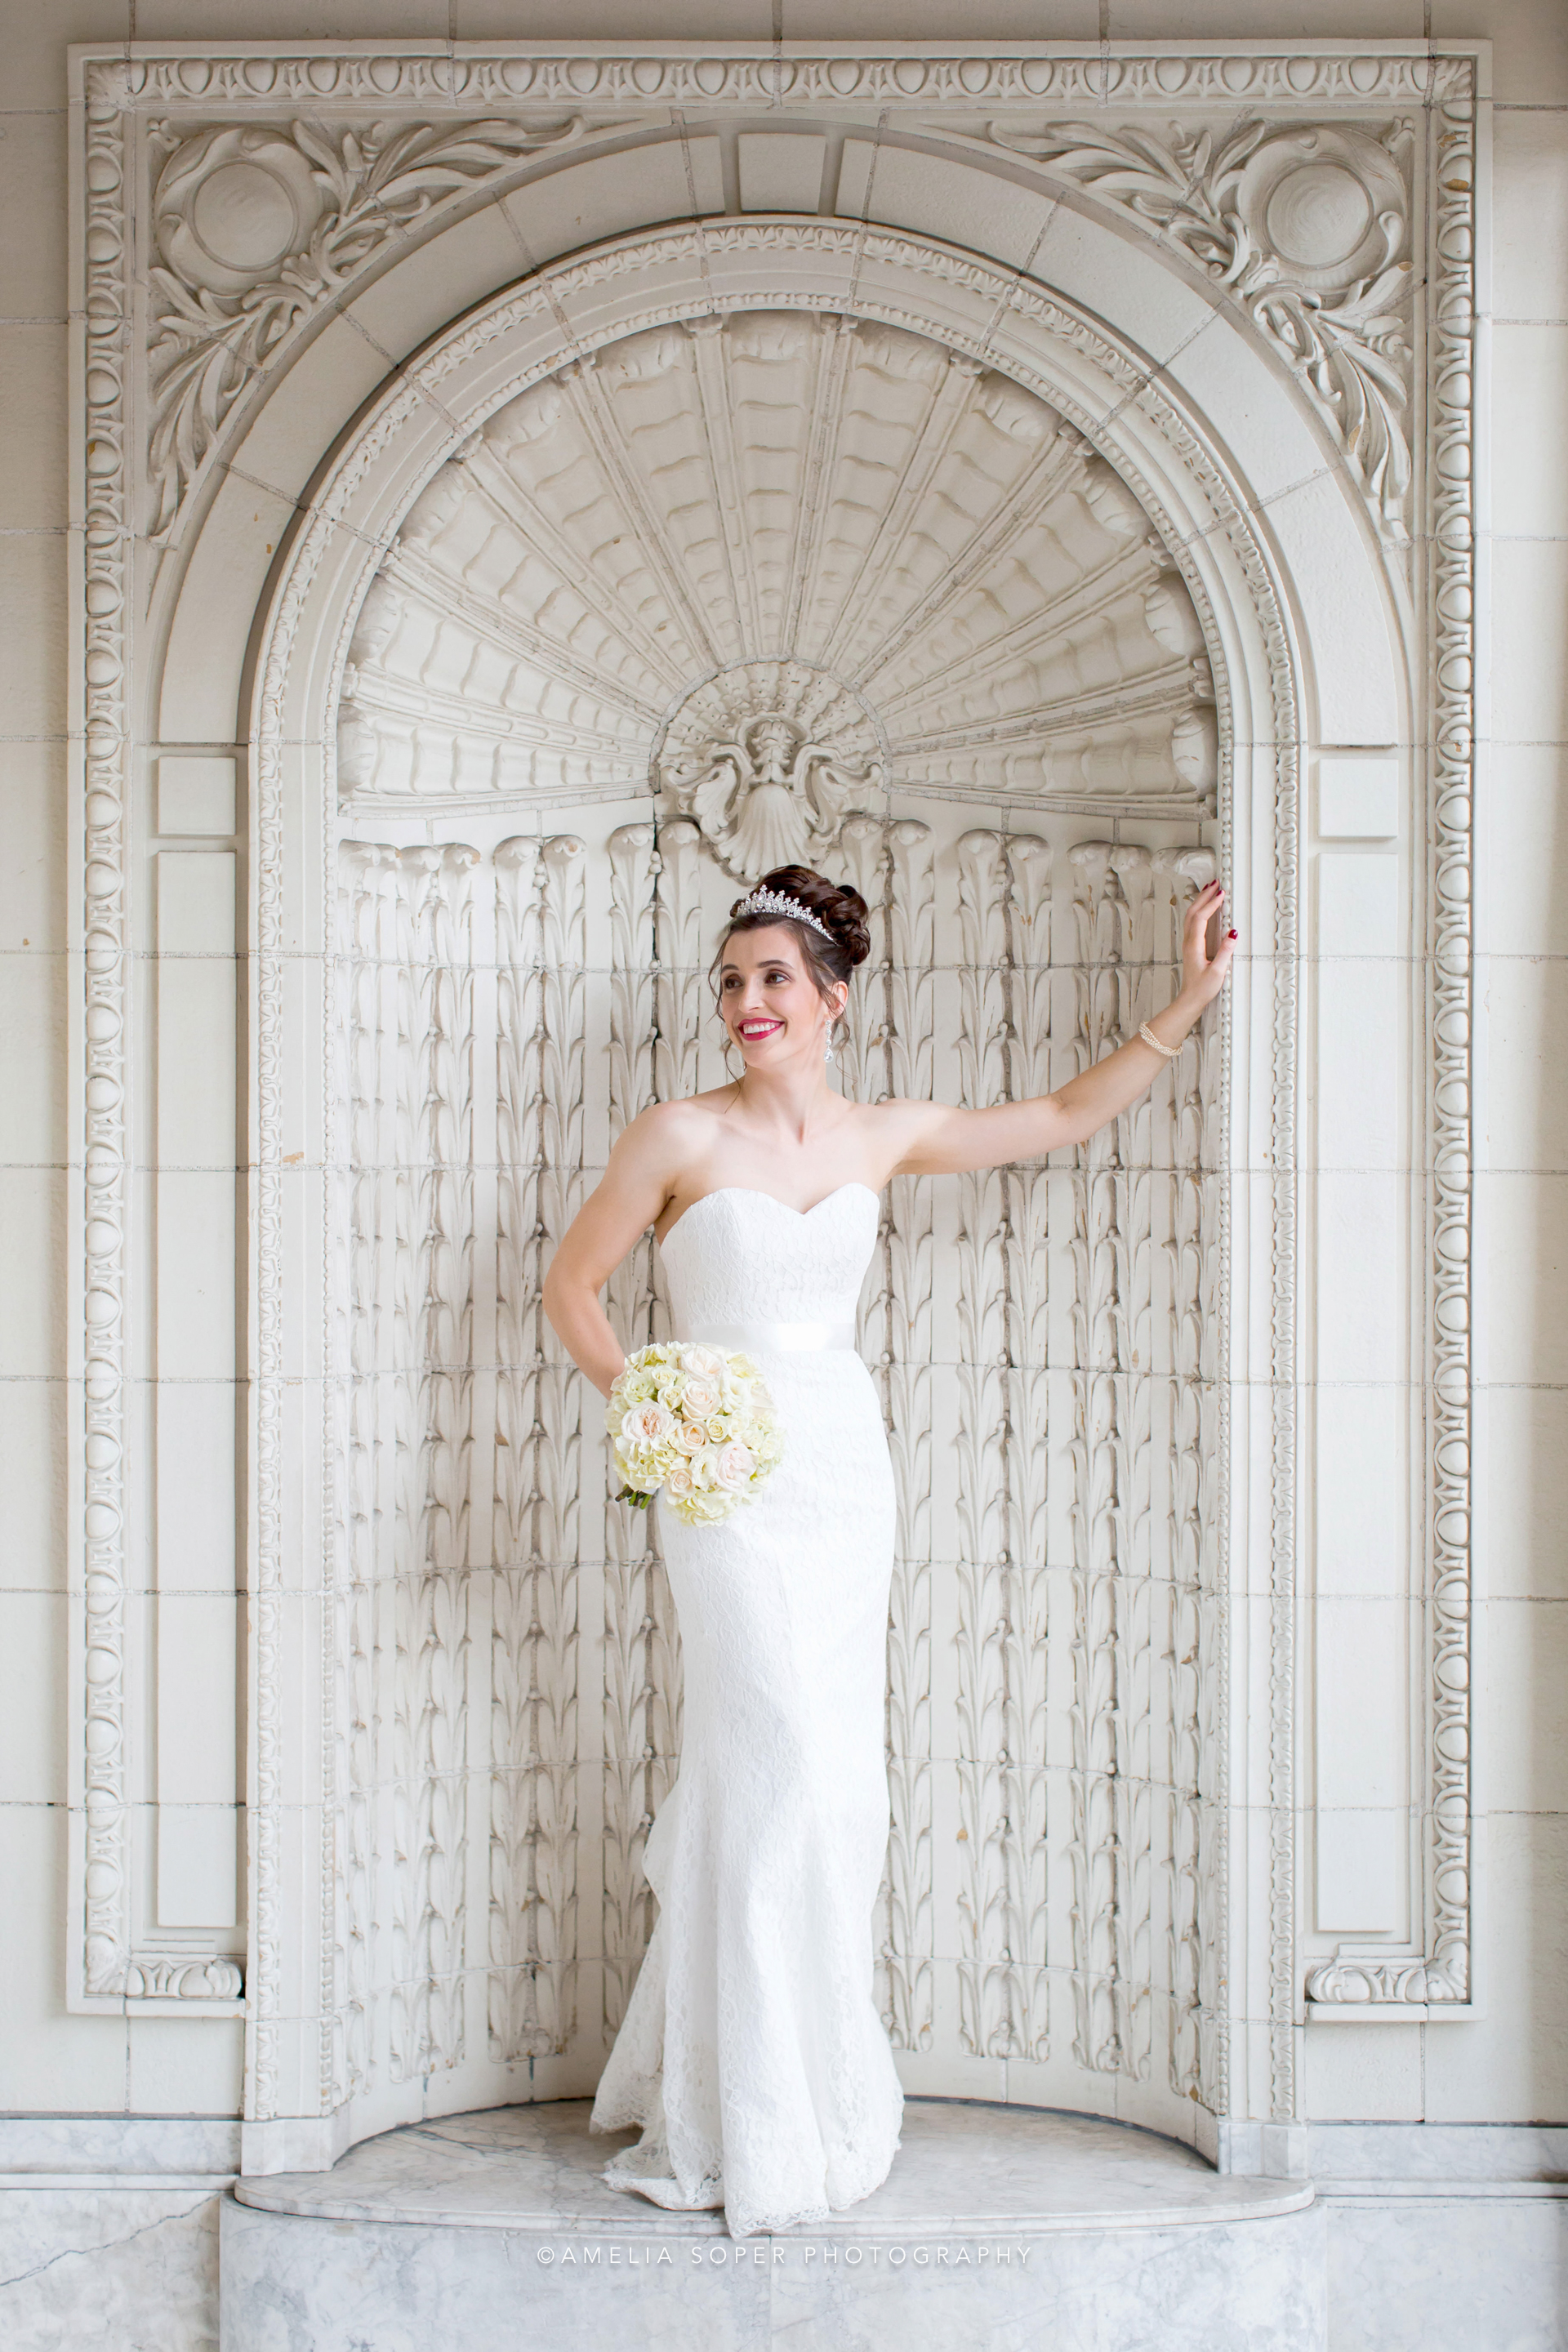 6 tips for looking your best in wedding photos